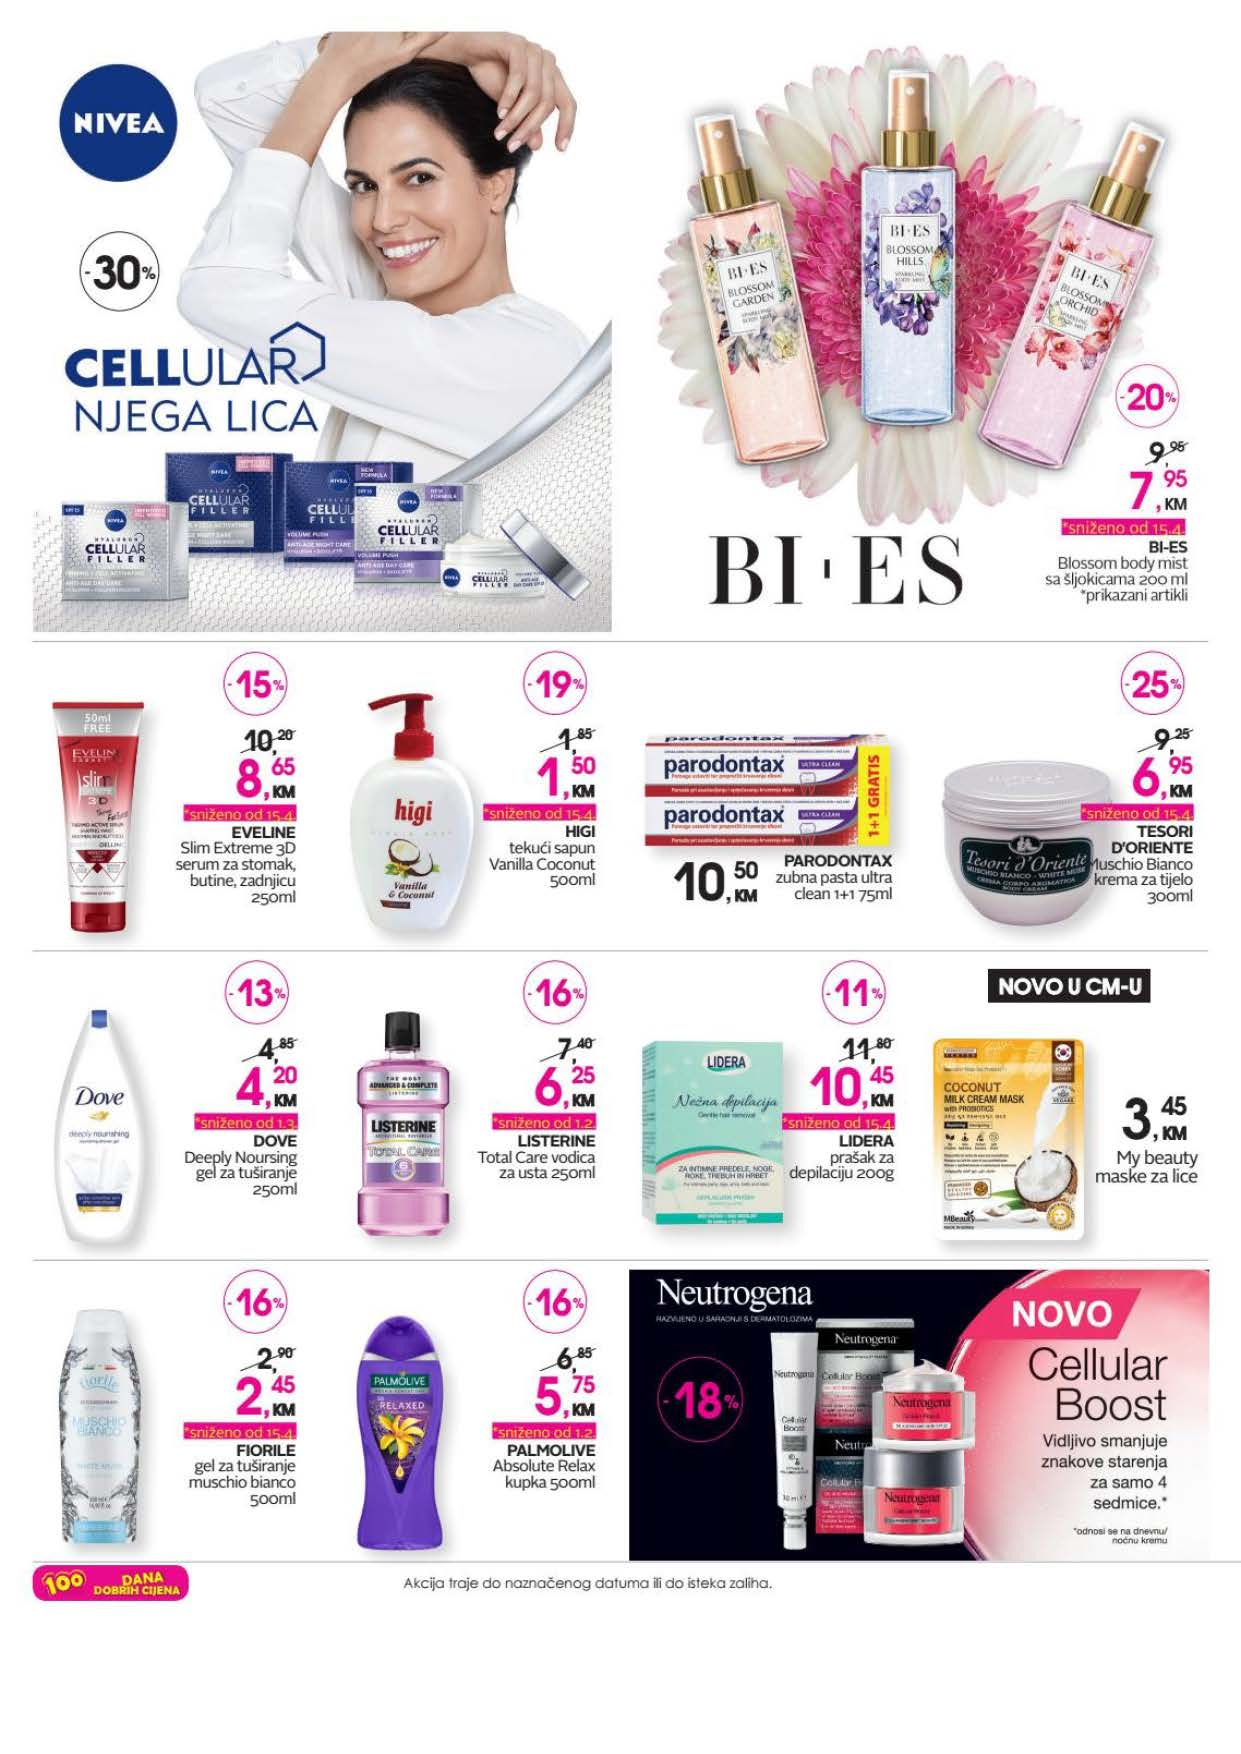 COSMETIC MARKET CM Katalog APRIL 2021 16.04.2021. 30.04.2021. Page 12